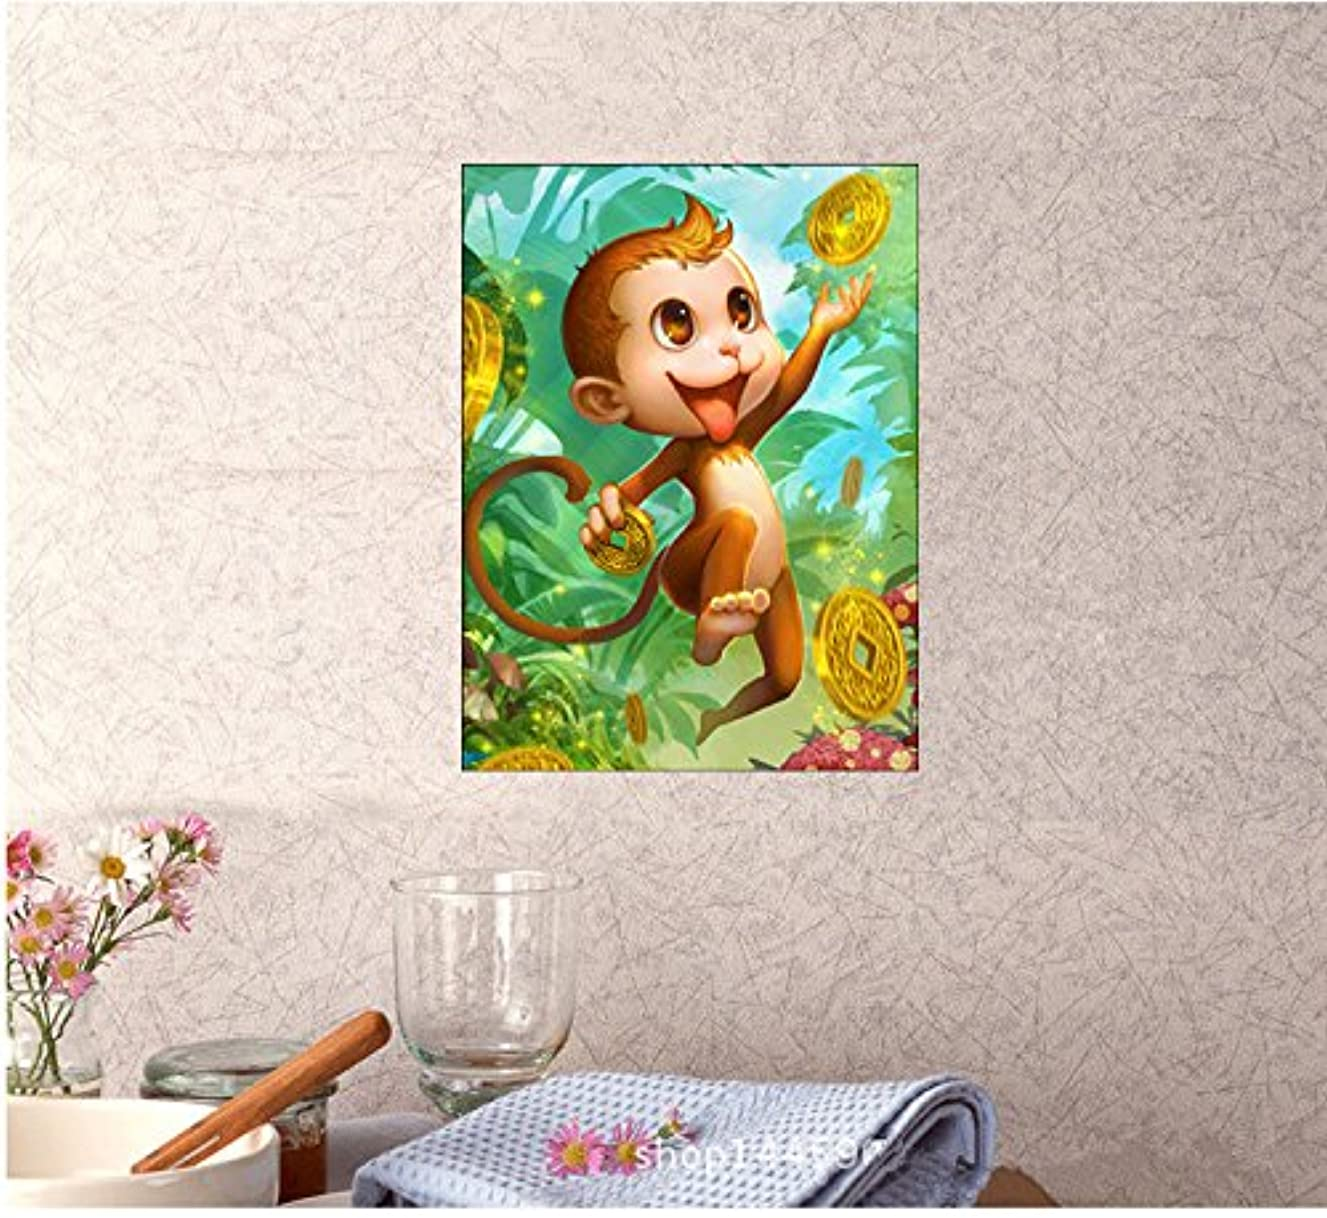 Fuming Monkey Diamond Embroidery 5D DIY Diamond Painting Cat Diamond Painting Cross Stitch Rhinestone Mosaic